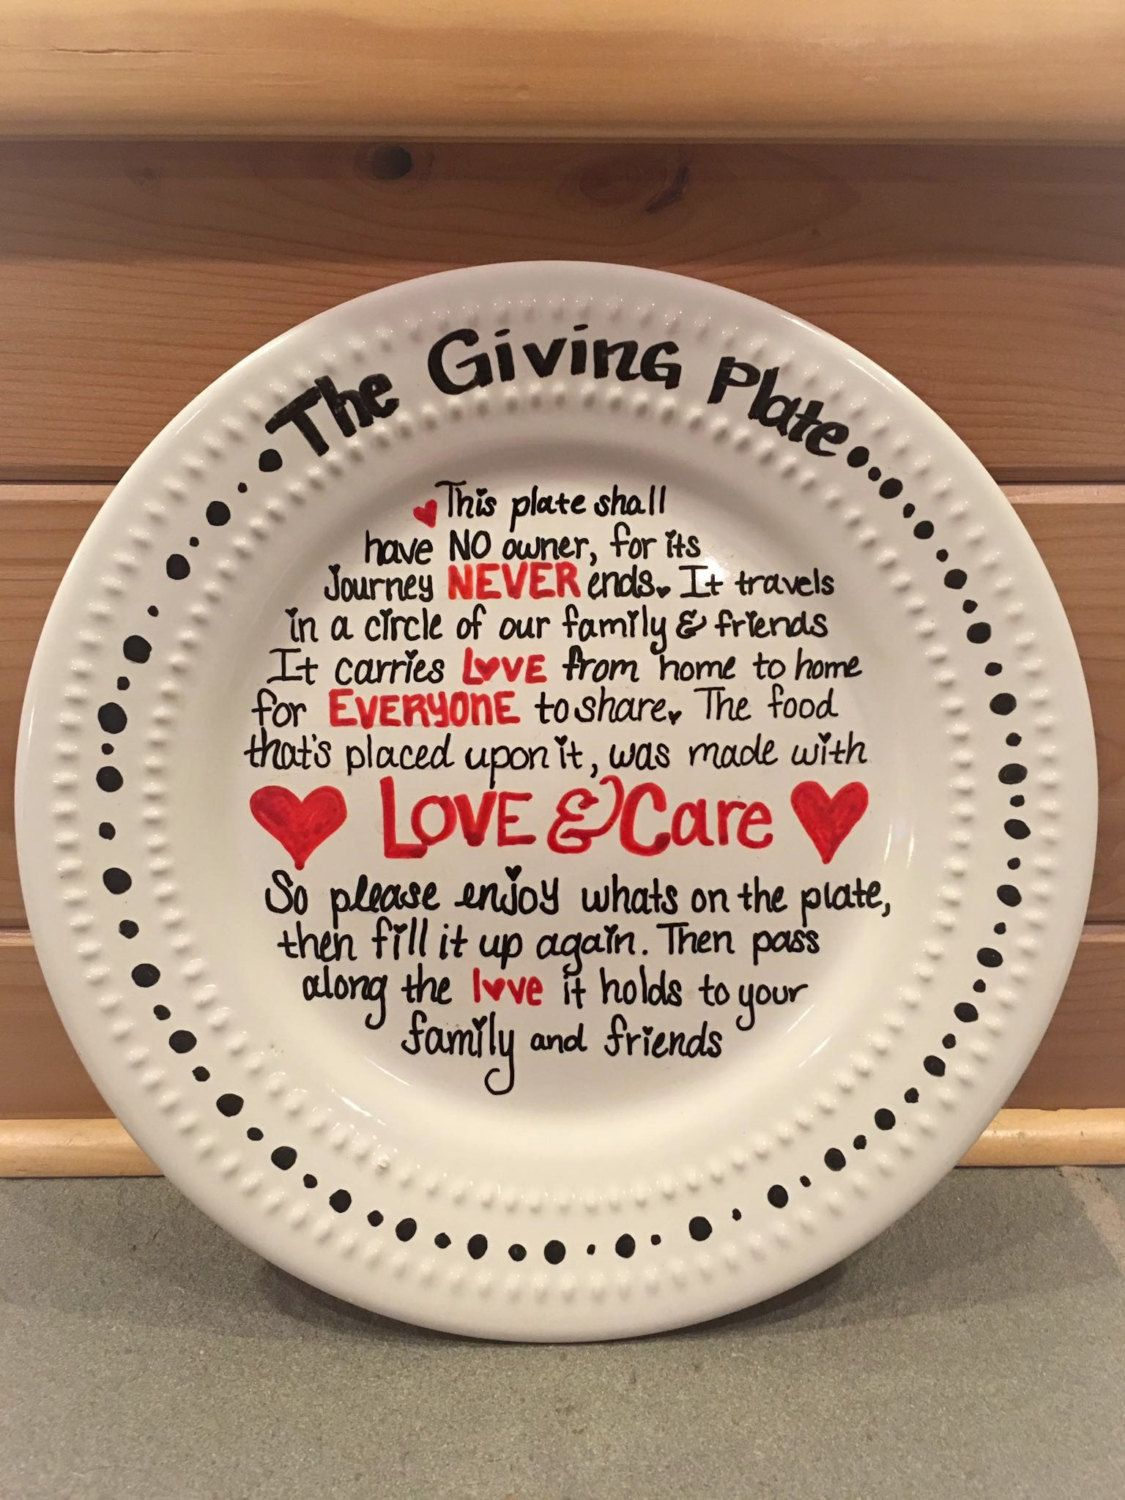 Ceramic Plate With The Giving Plate Poem Hand Written With Acrylic